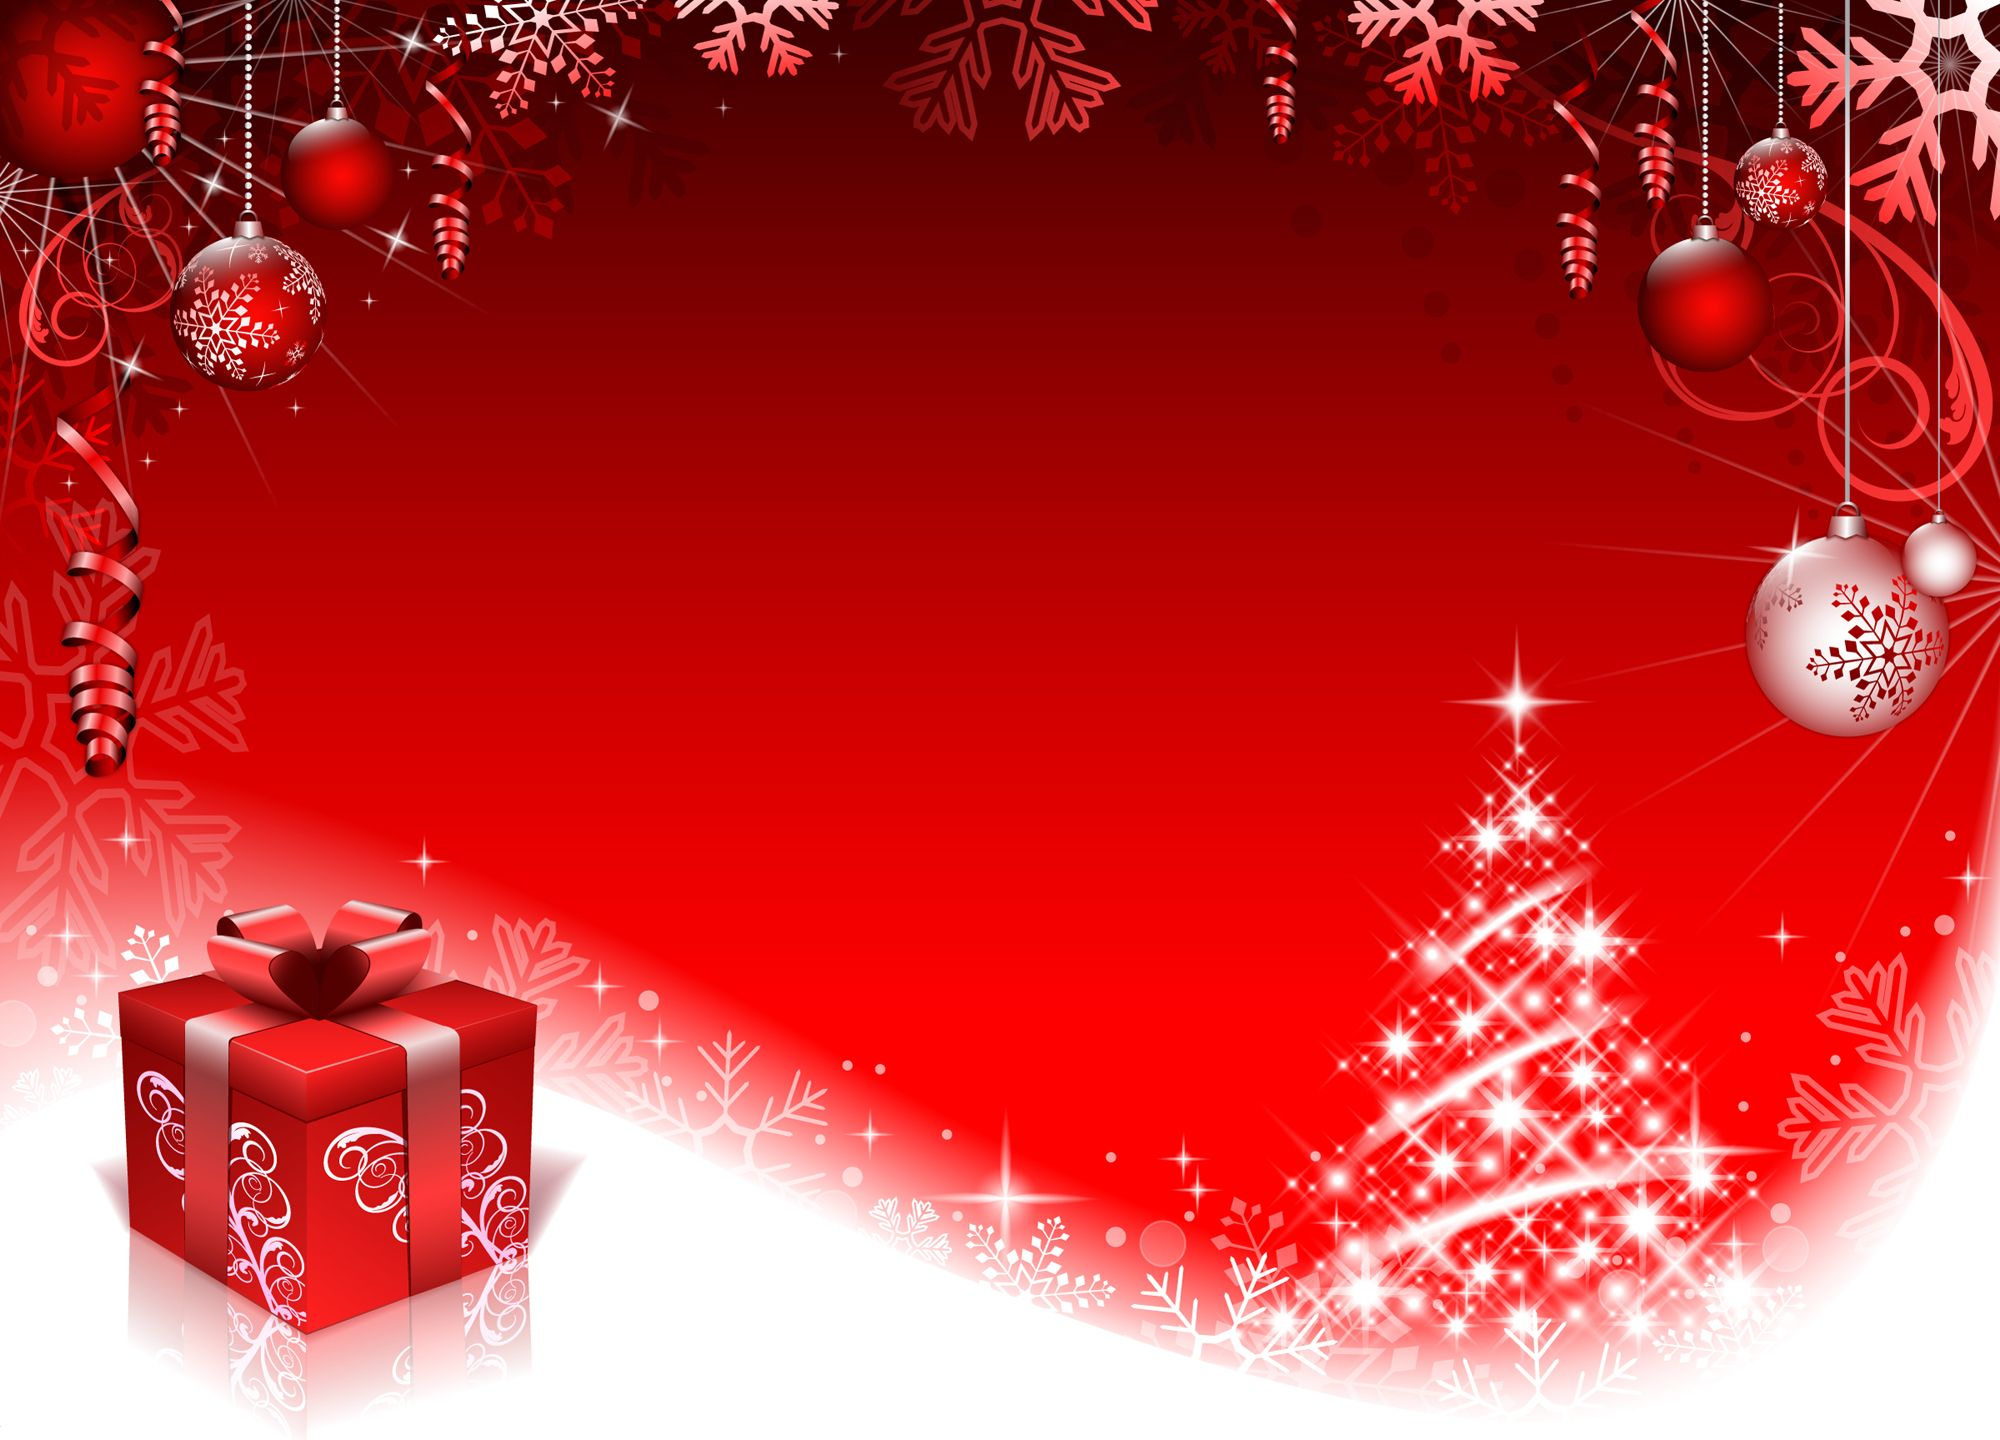 christmas backgrounds christmas backgrounds for photoshop wallpapers9 - Red Christmas Background